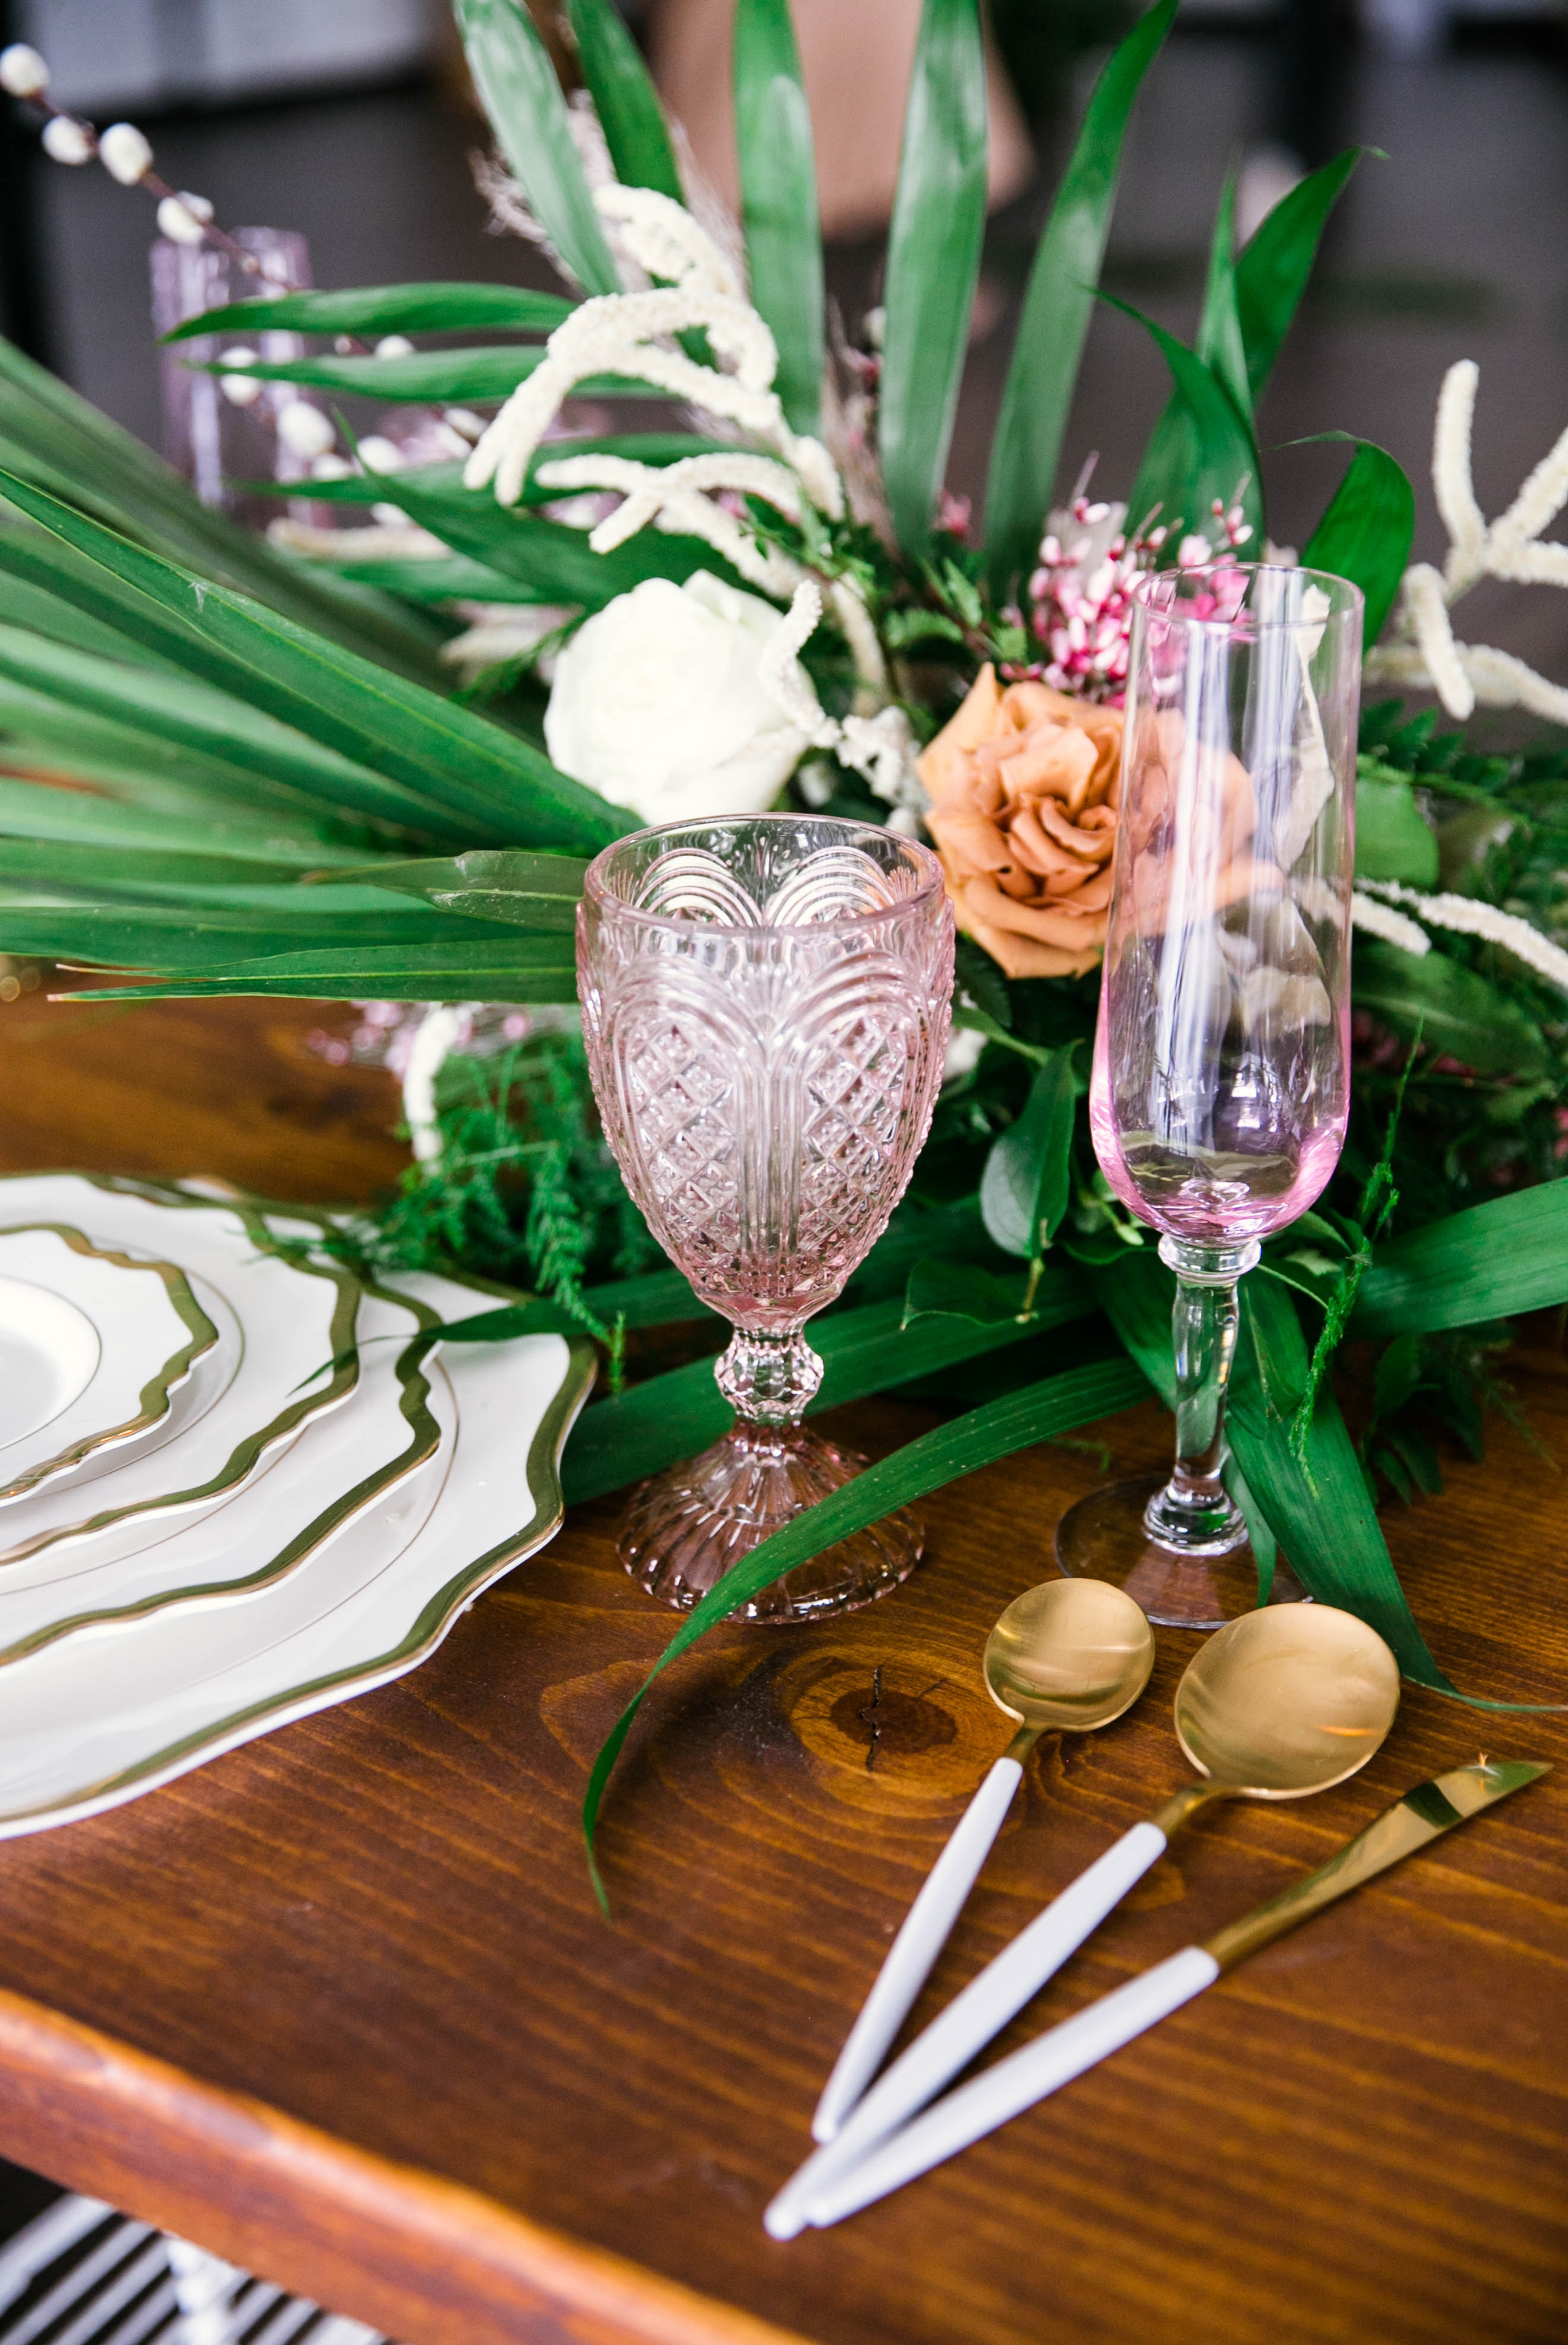 Wedding Table Setting with white and gold plates, pink glass wear, gold and white silverware - Tropical Destination Wedding Inspiration - Honolulu, Oahu, Hawaii Photographer